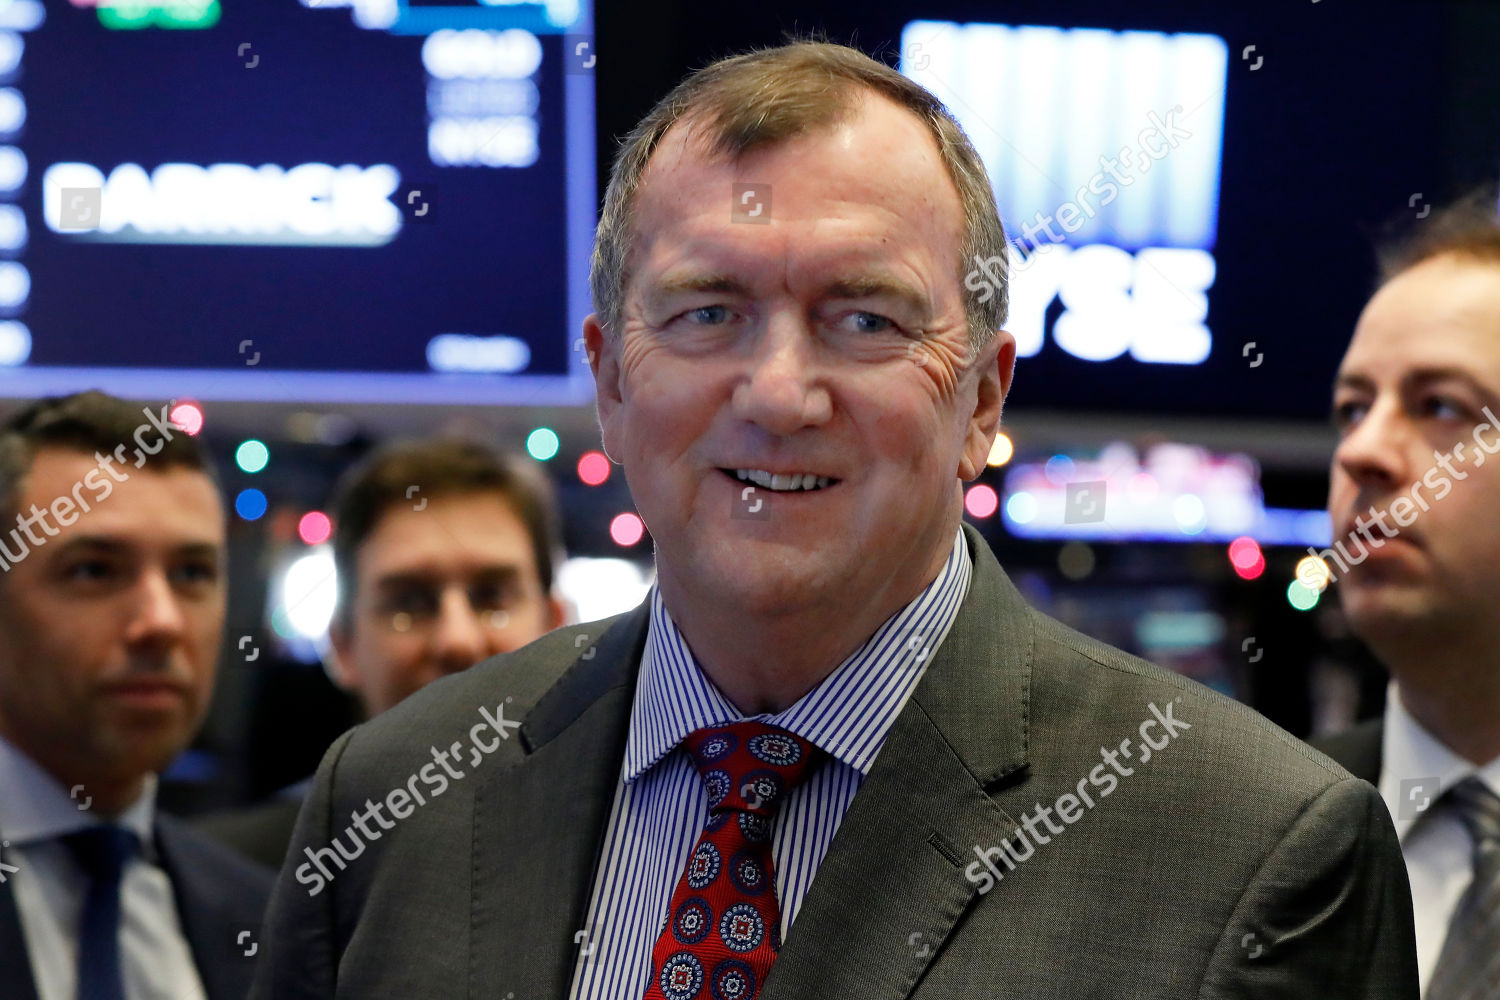 Barrick Gold Corporation President CEO Mark Bristow